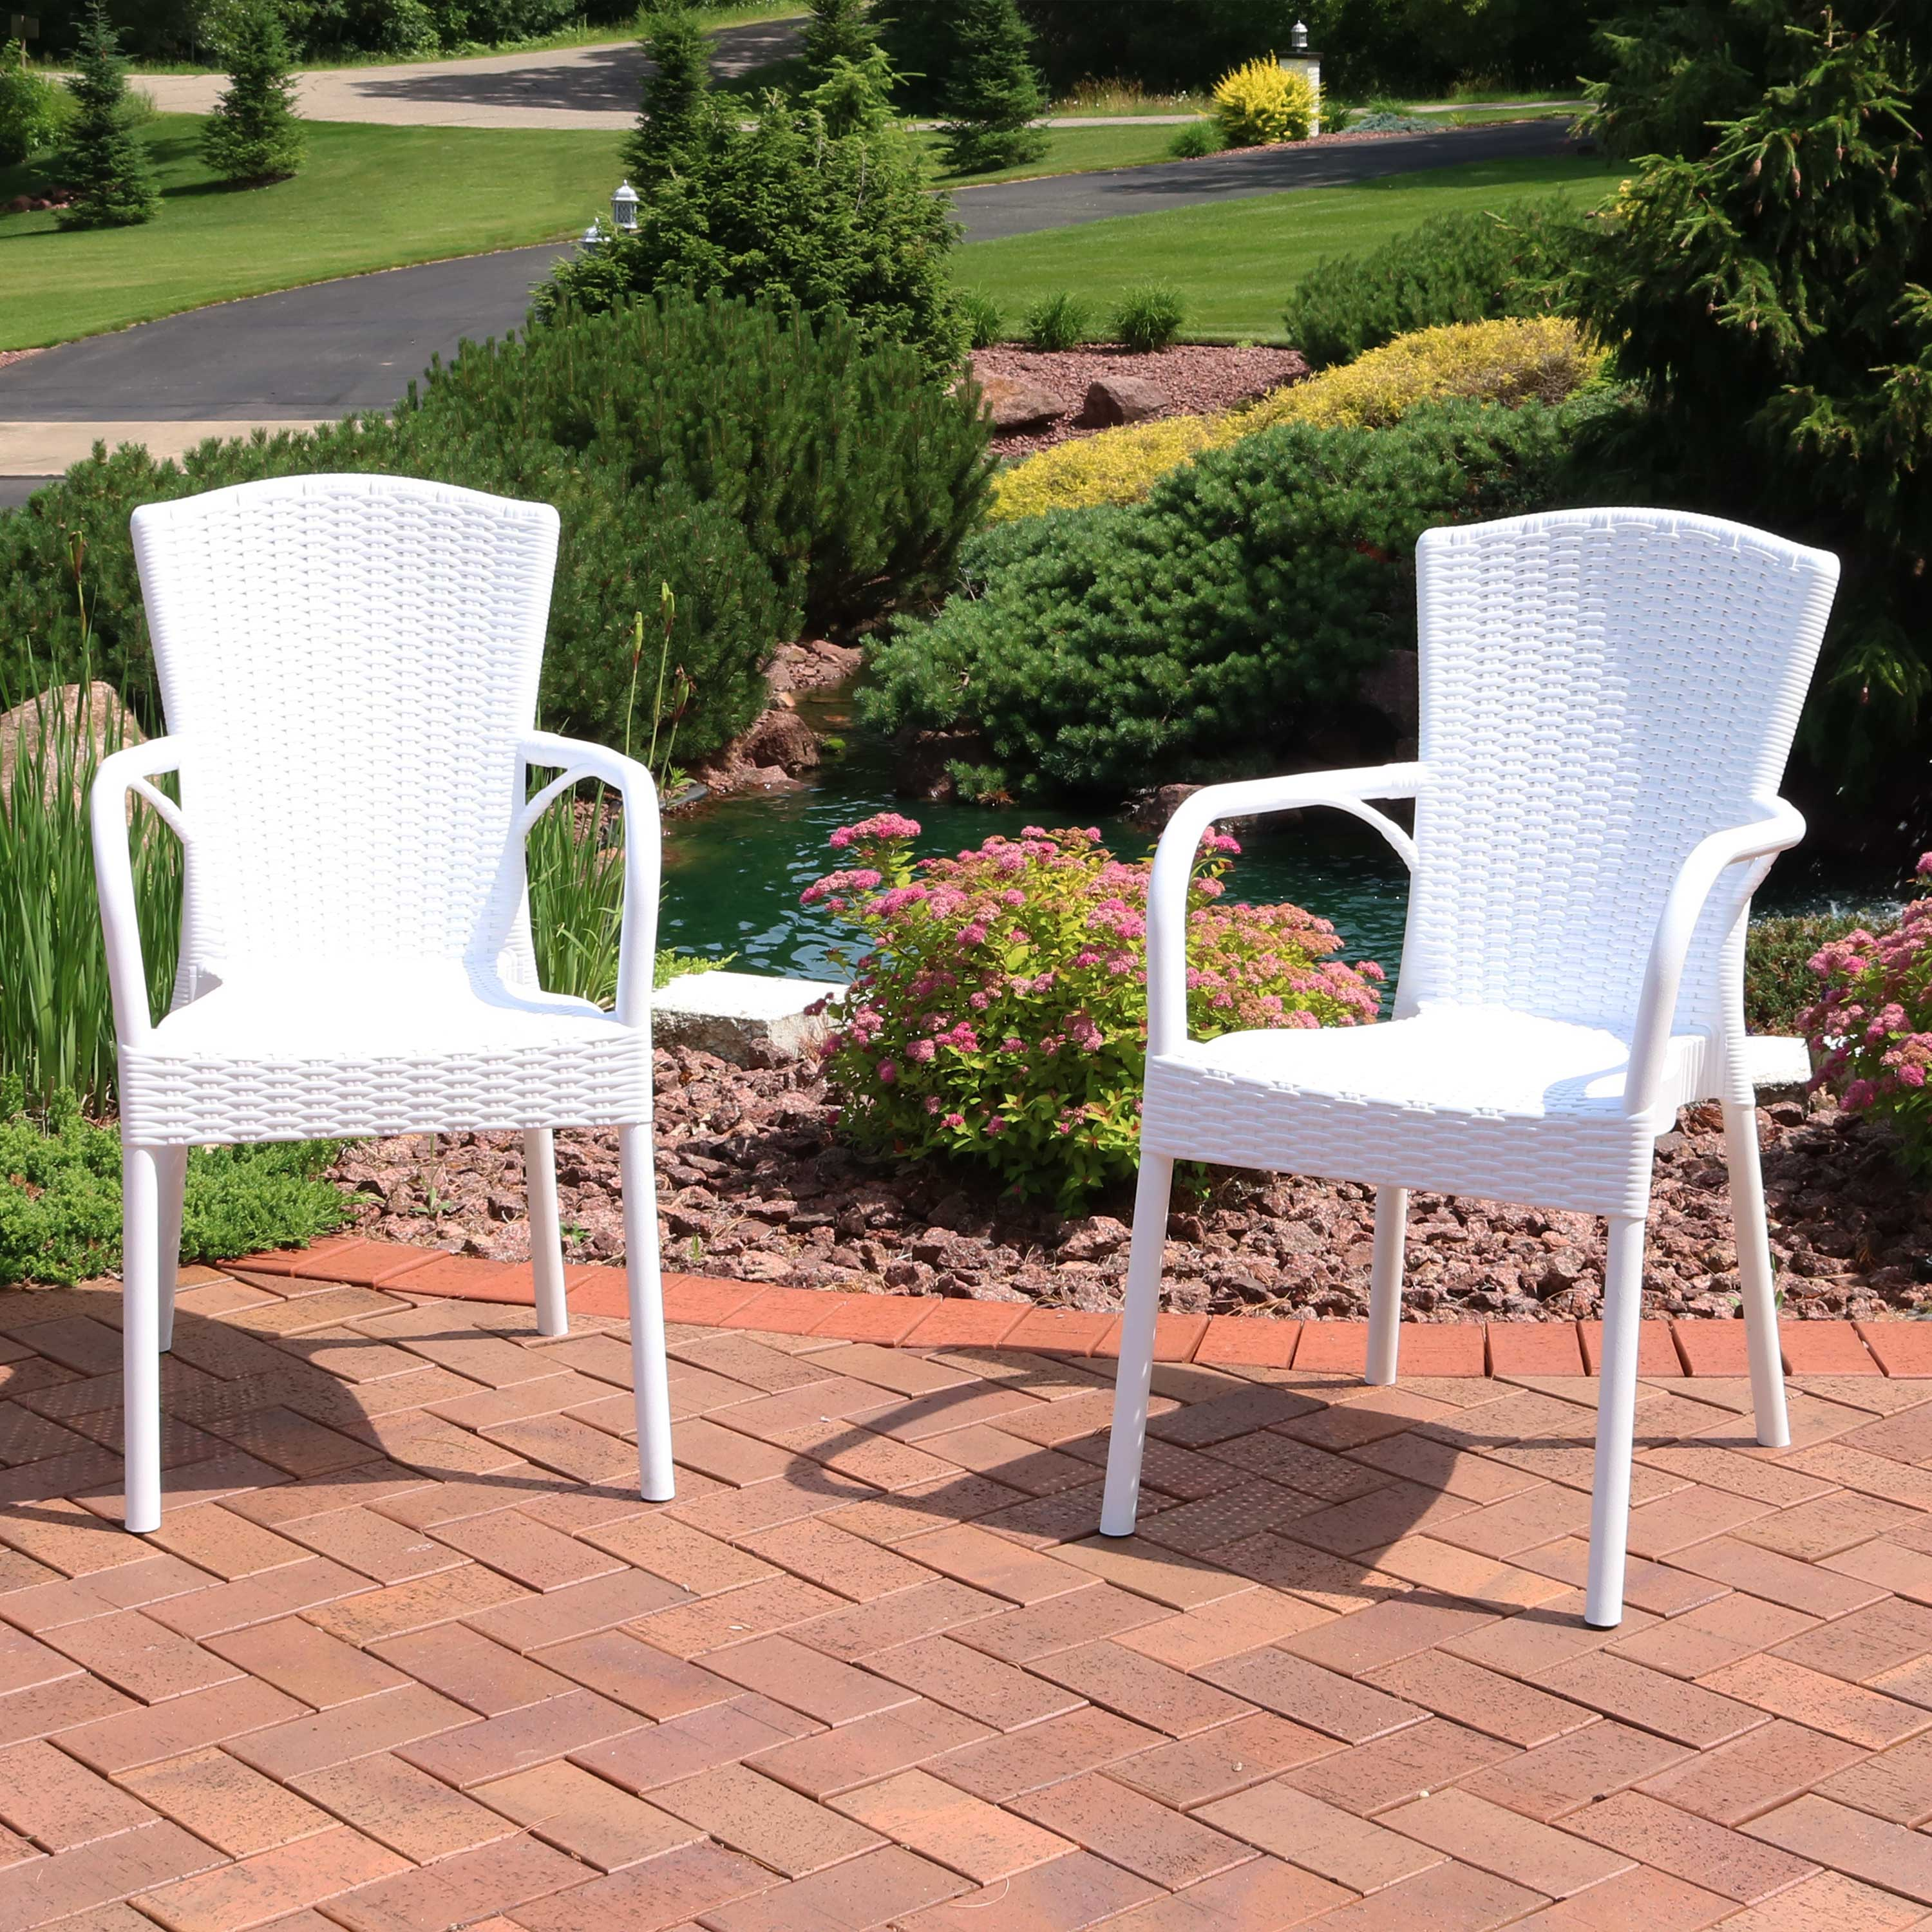 sunnydaze segesta all weather plastic outdoor dining chair commercial grade faux wicker design armchair lawn and garden chair indoor outdoor use